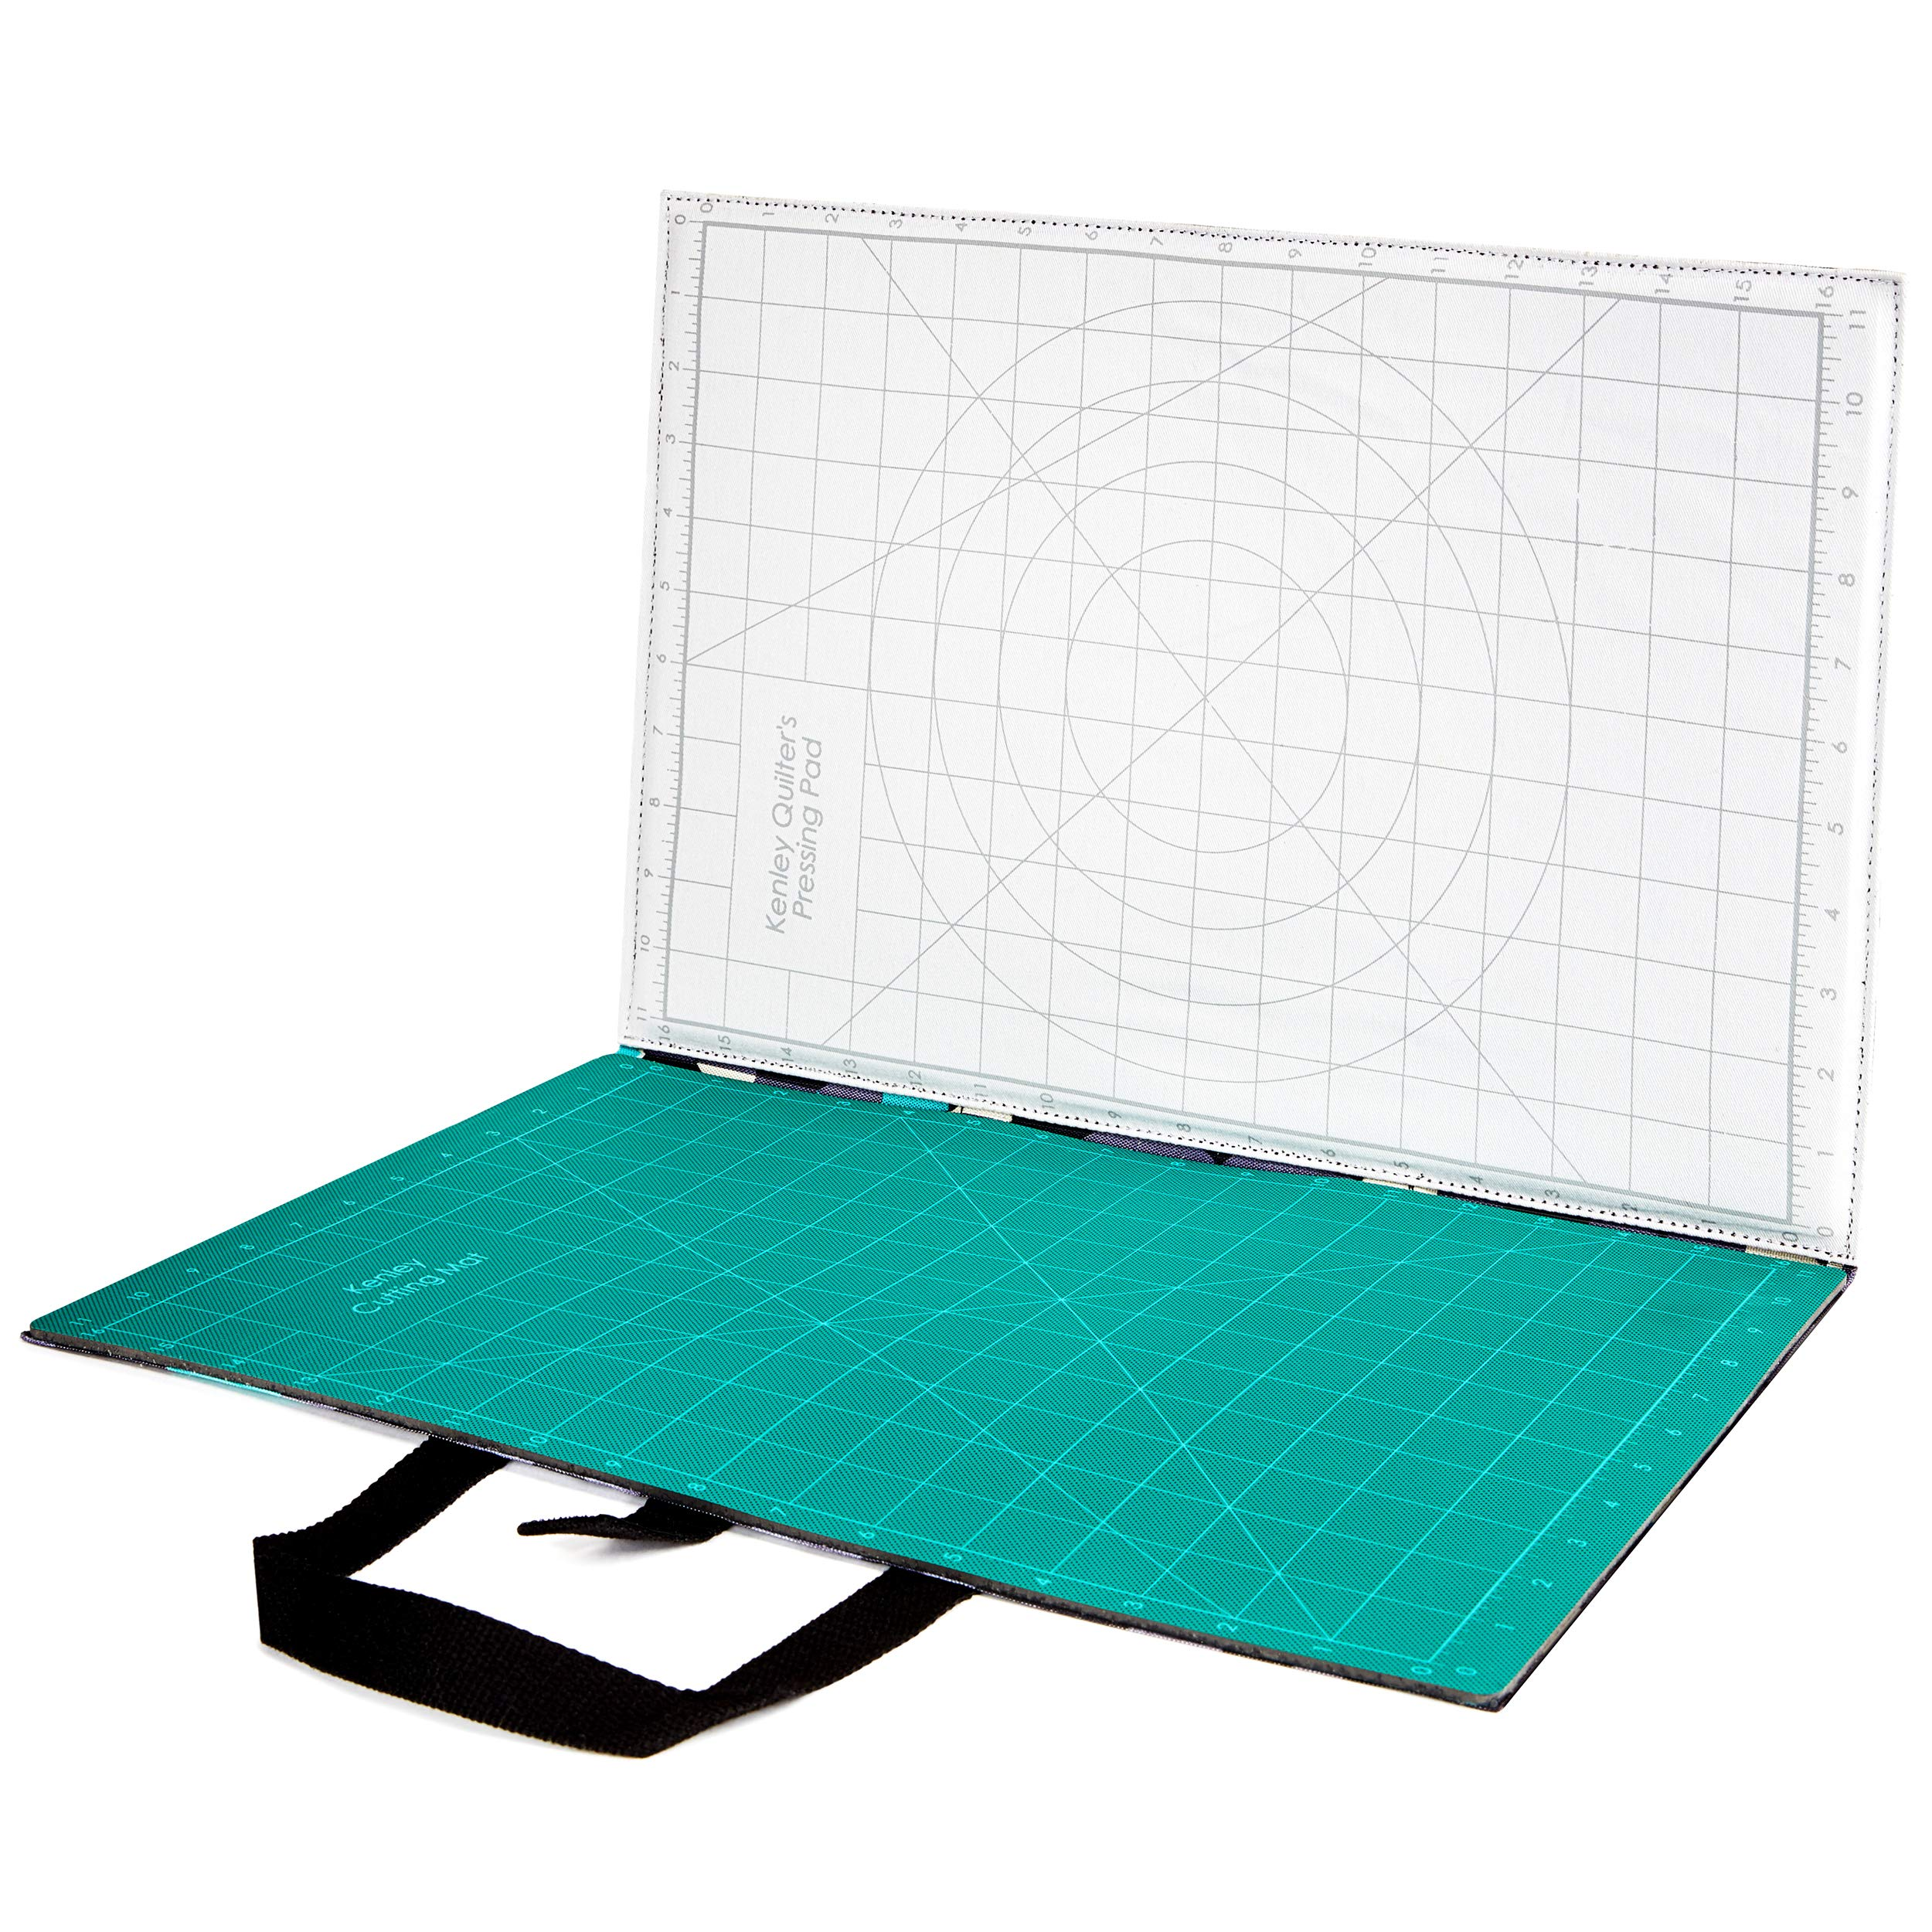 Quilting Cutting and Ironing Pressing Mat - Portable Foldaway Quilter's Station - Gridded Ironing and Pressing Pad